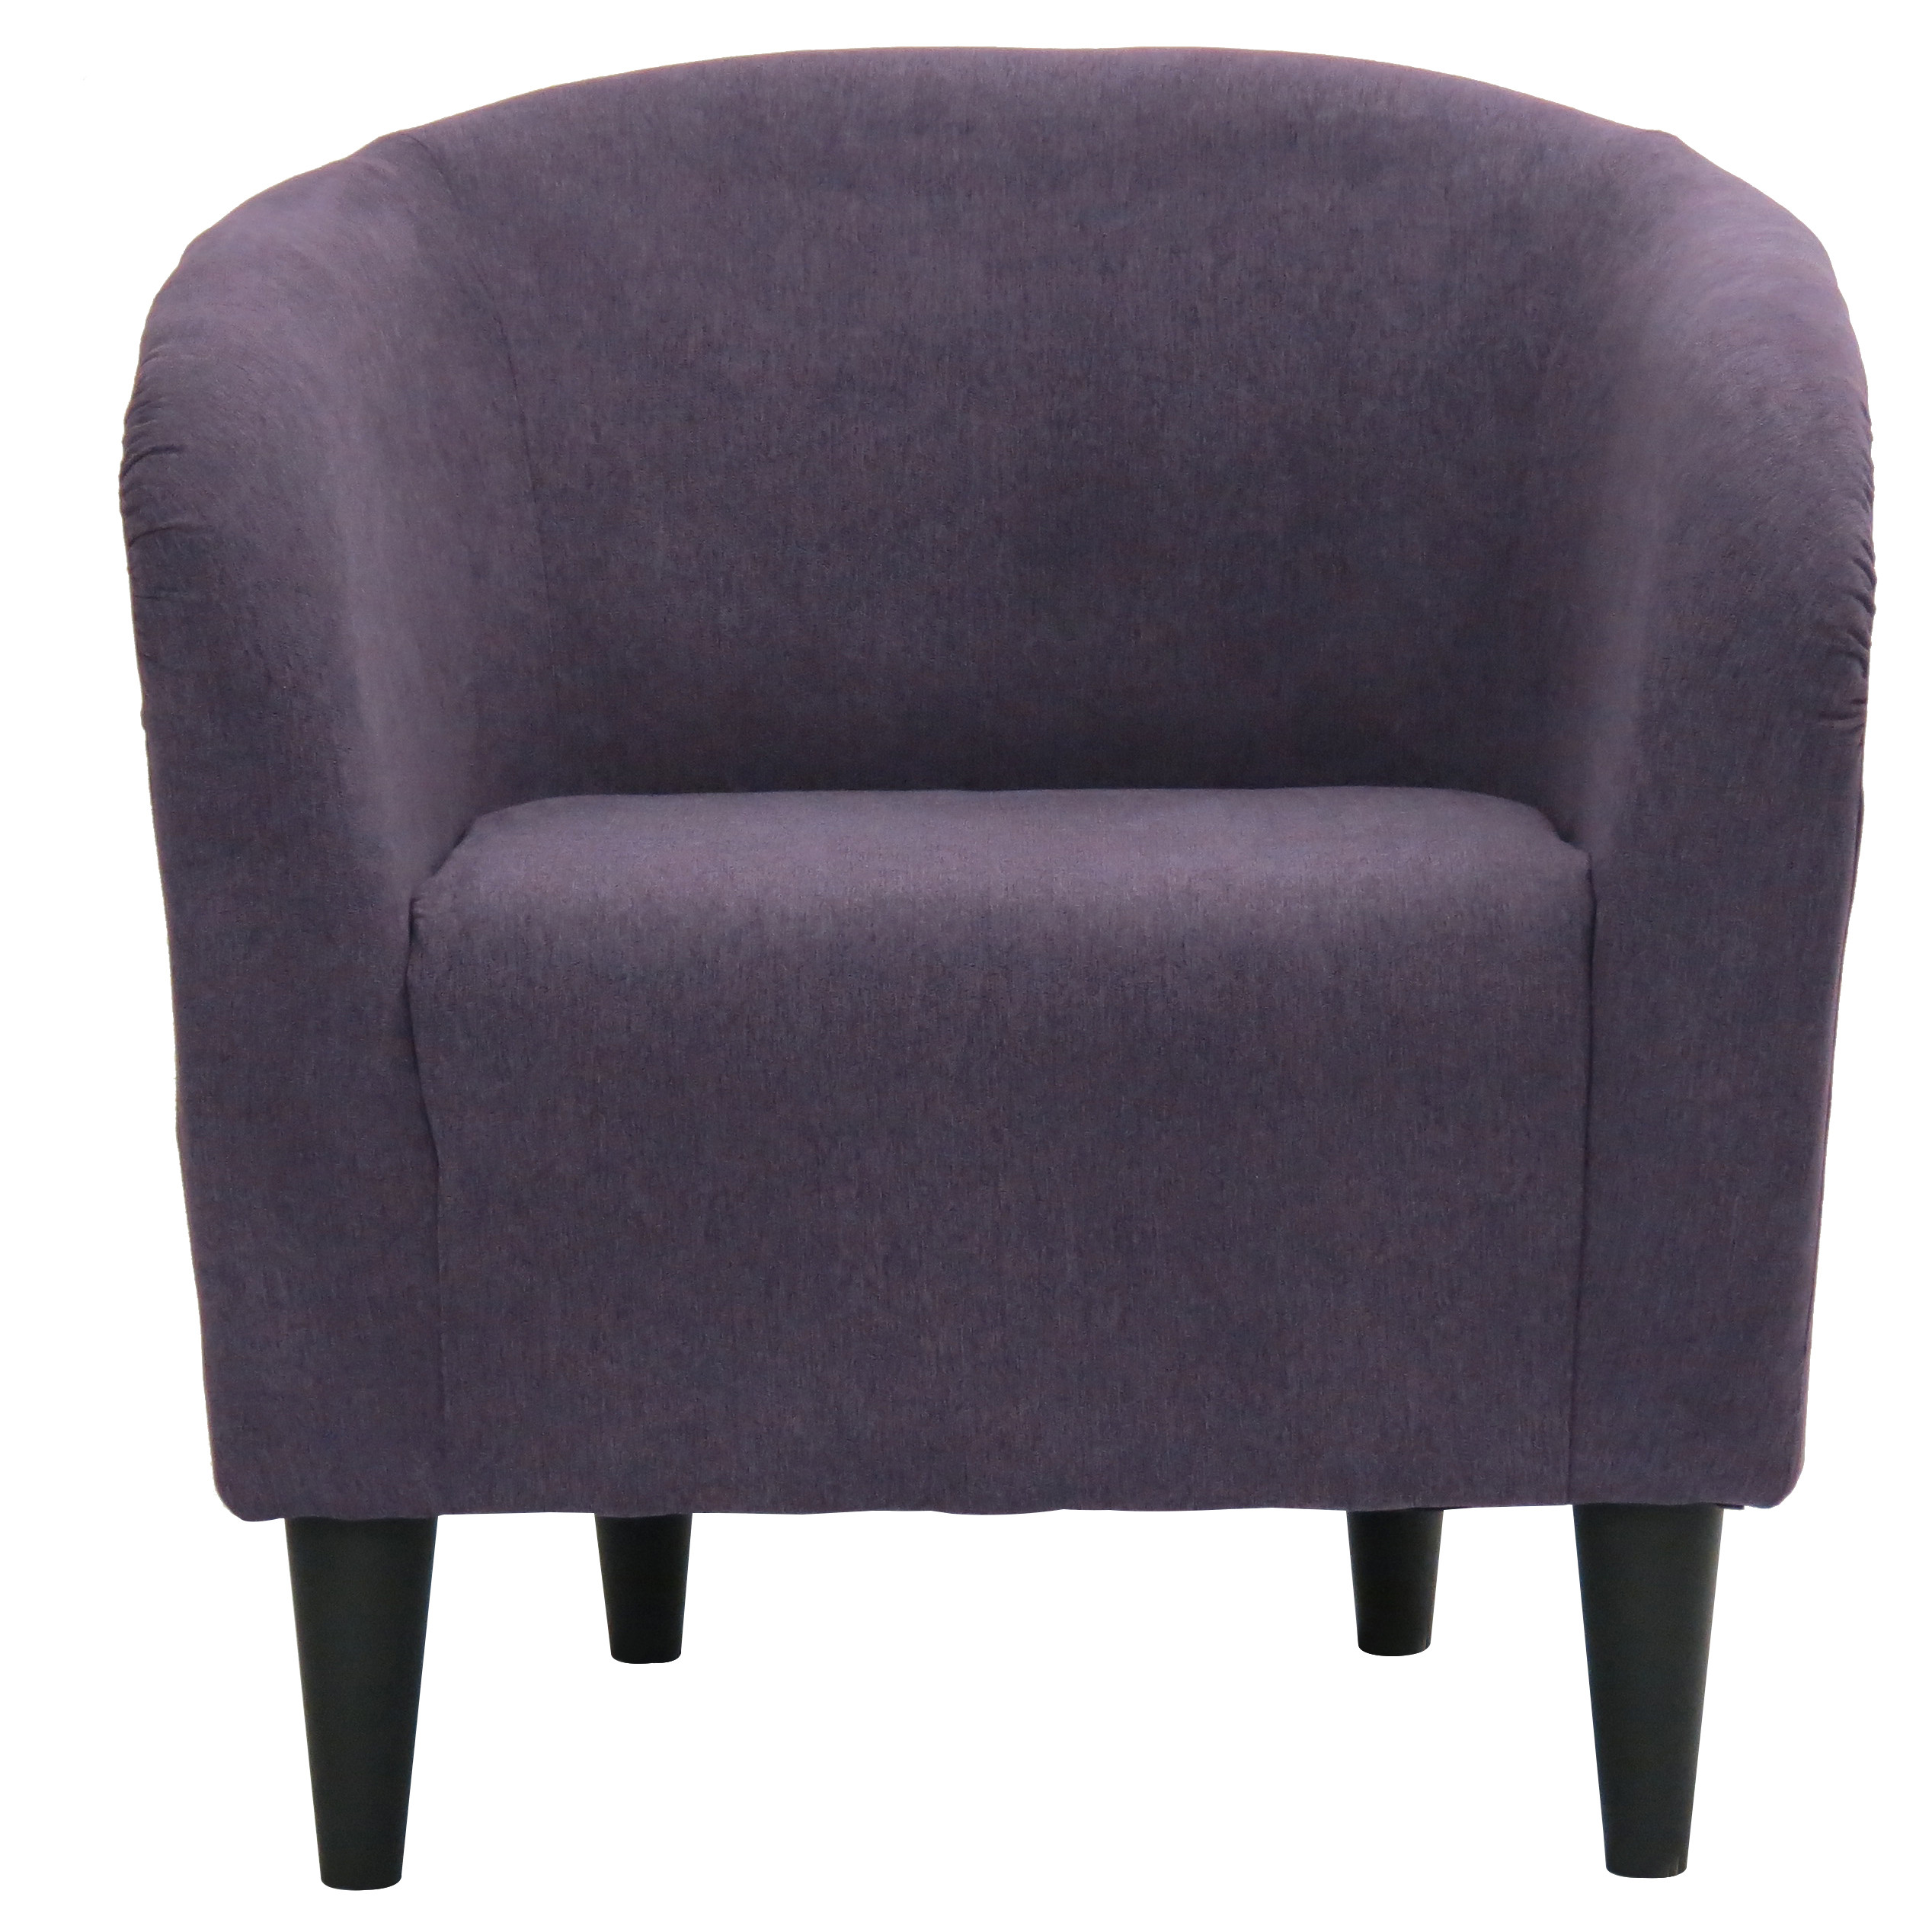 Hampton Barrel Chair - Purple